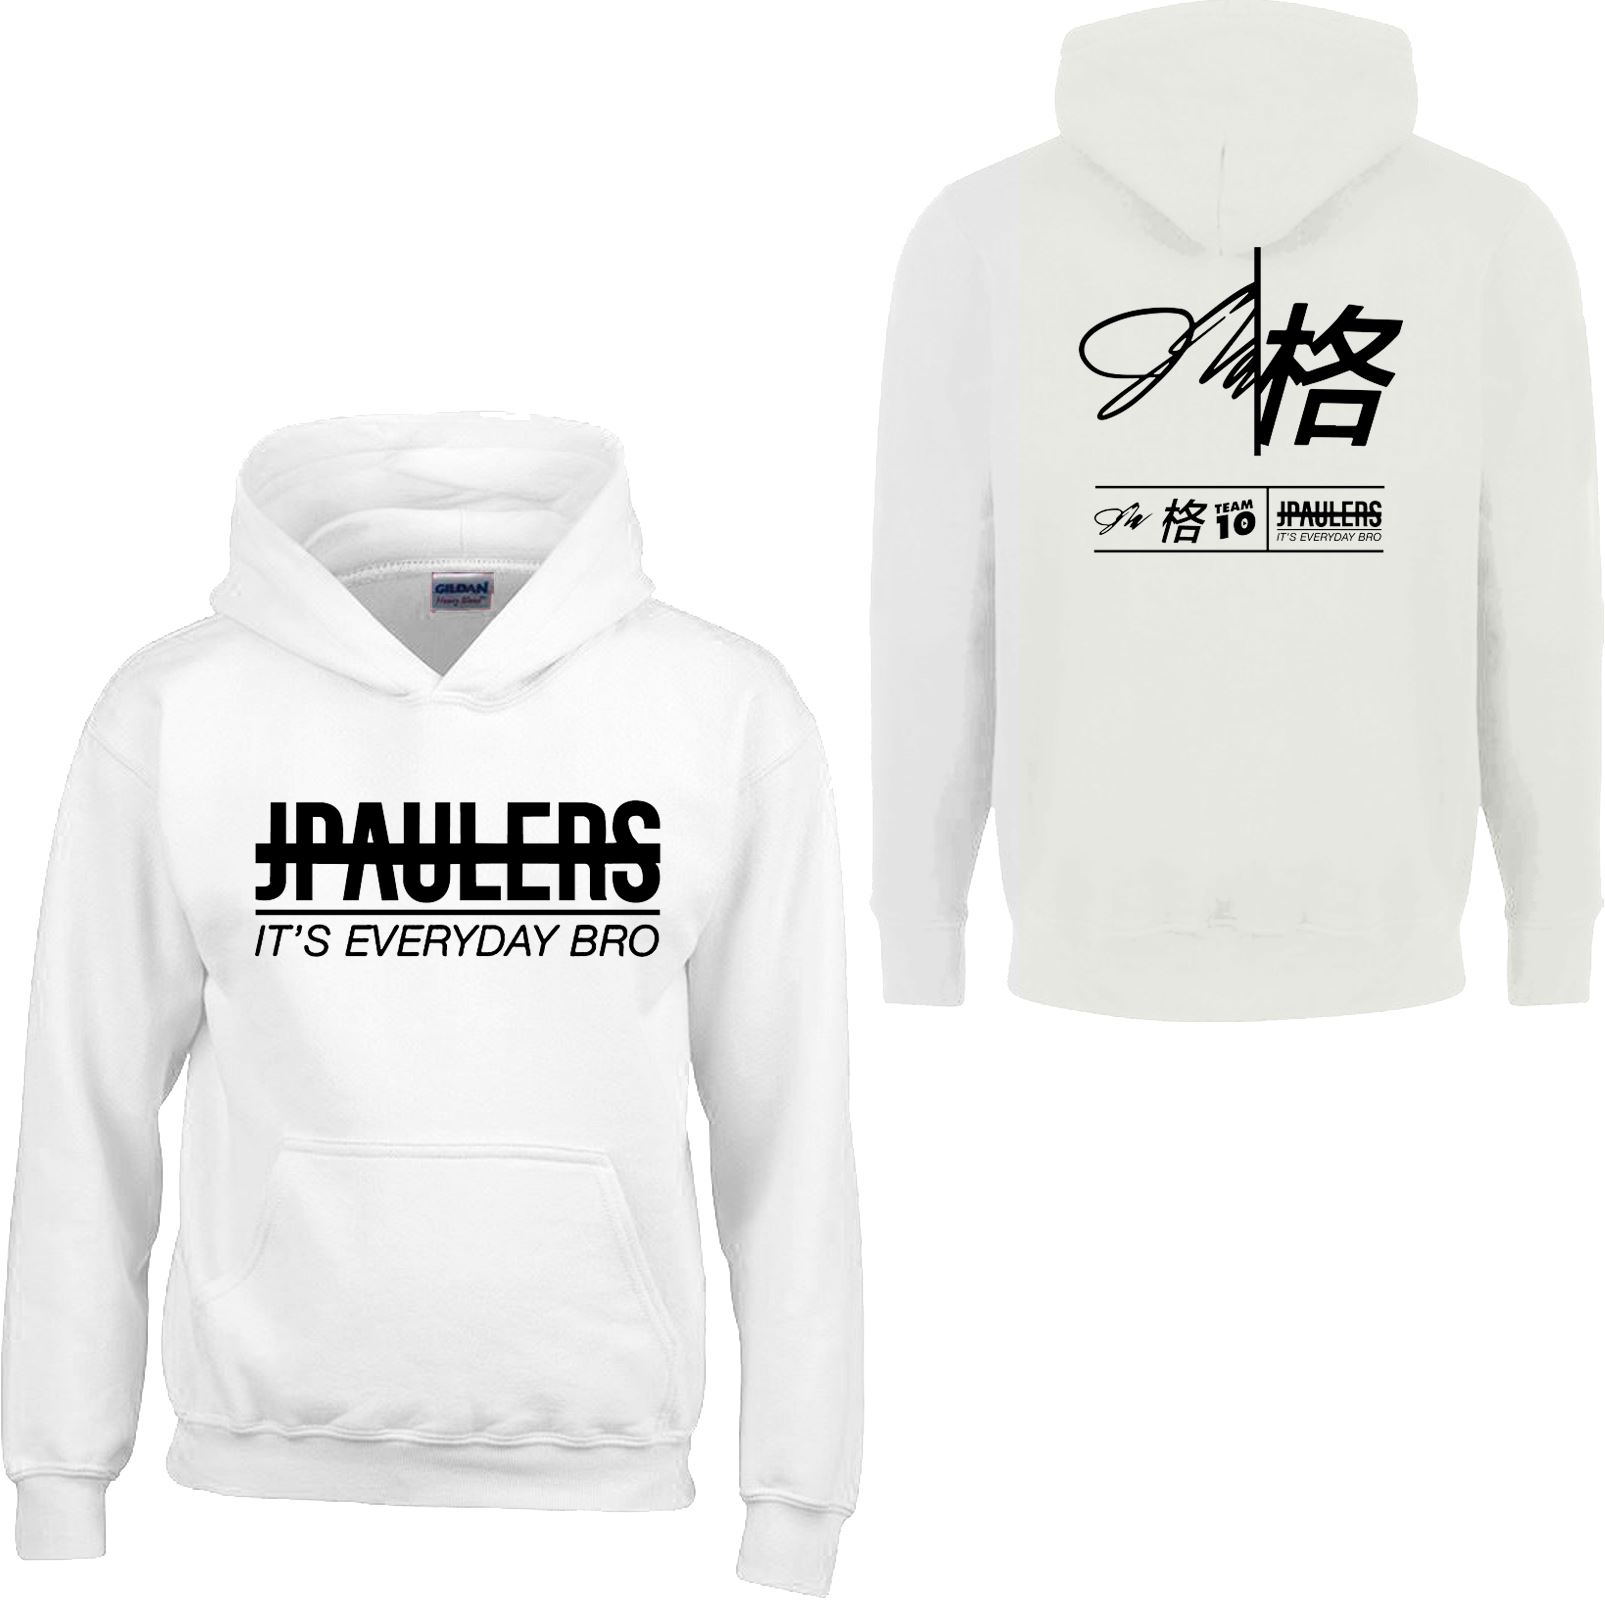 JPAULERS ITS EVERYDAY BRO Hoodie Kids Boys Gilrs Savage Youtuber Pullover Hooded